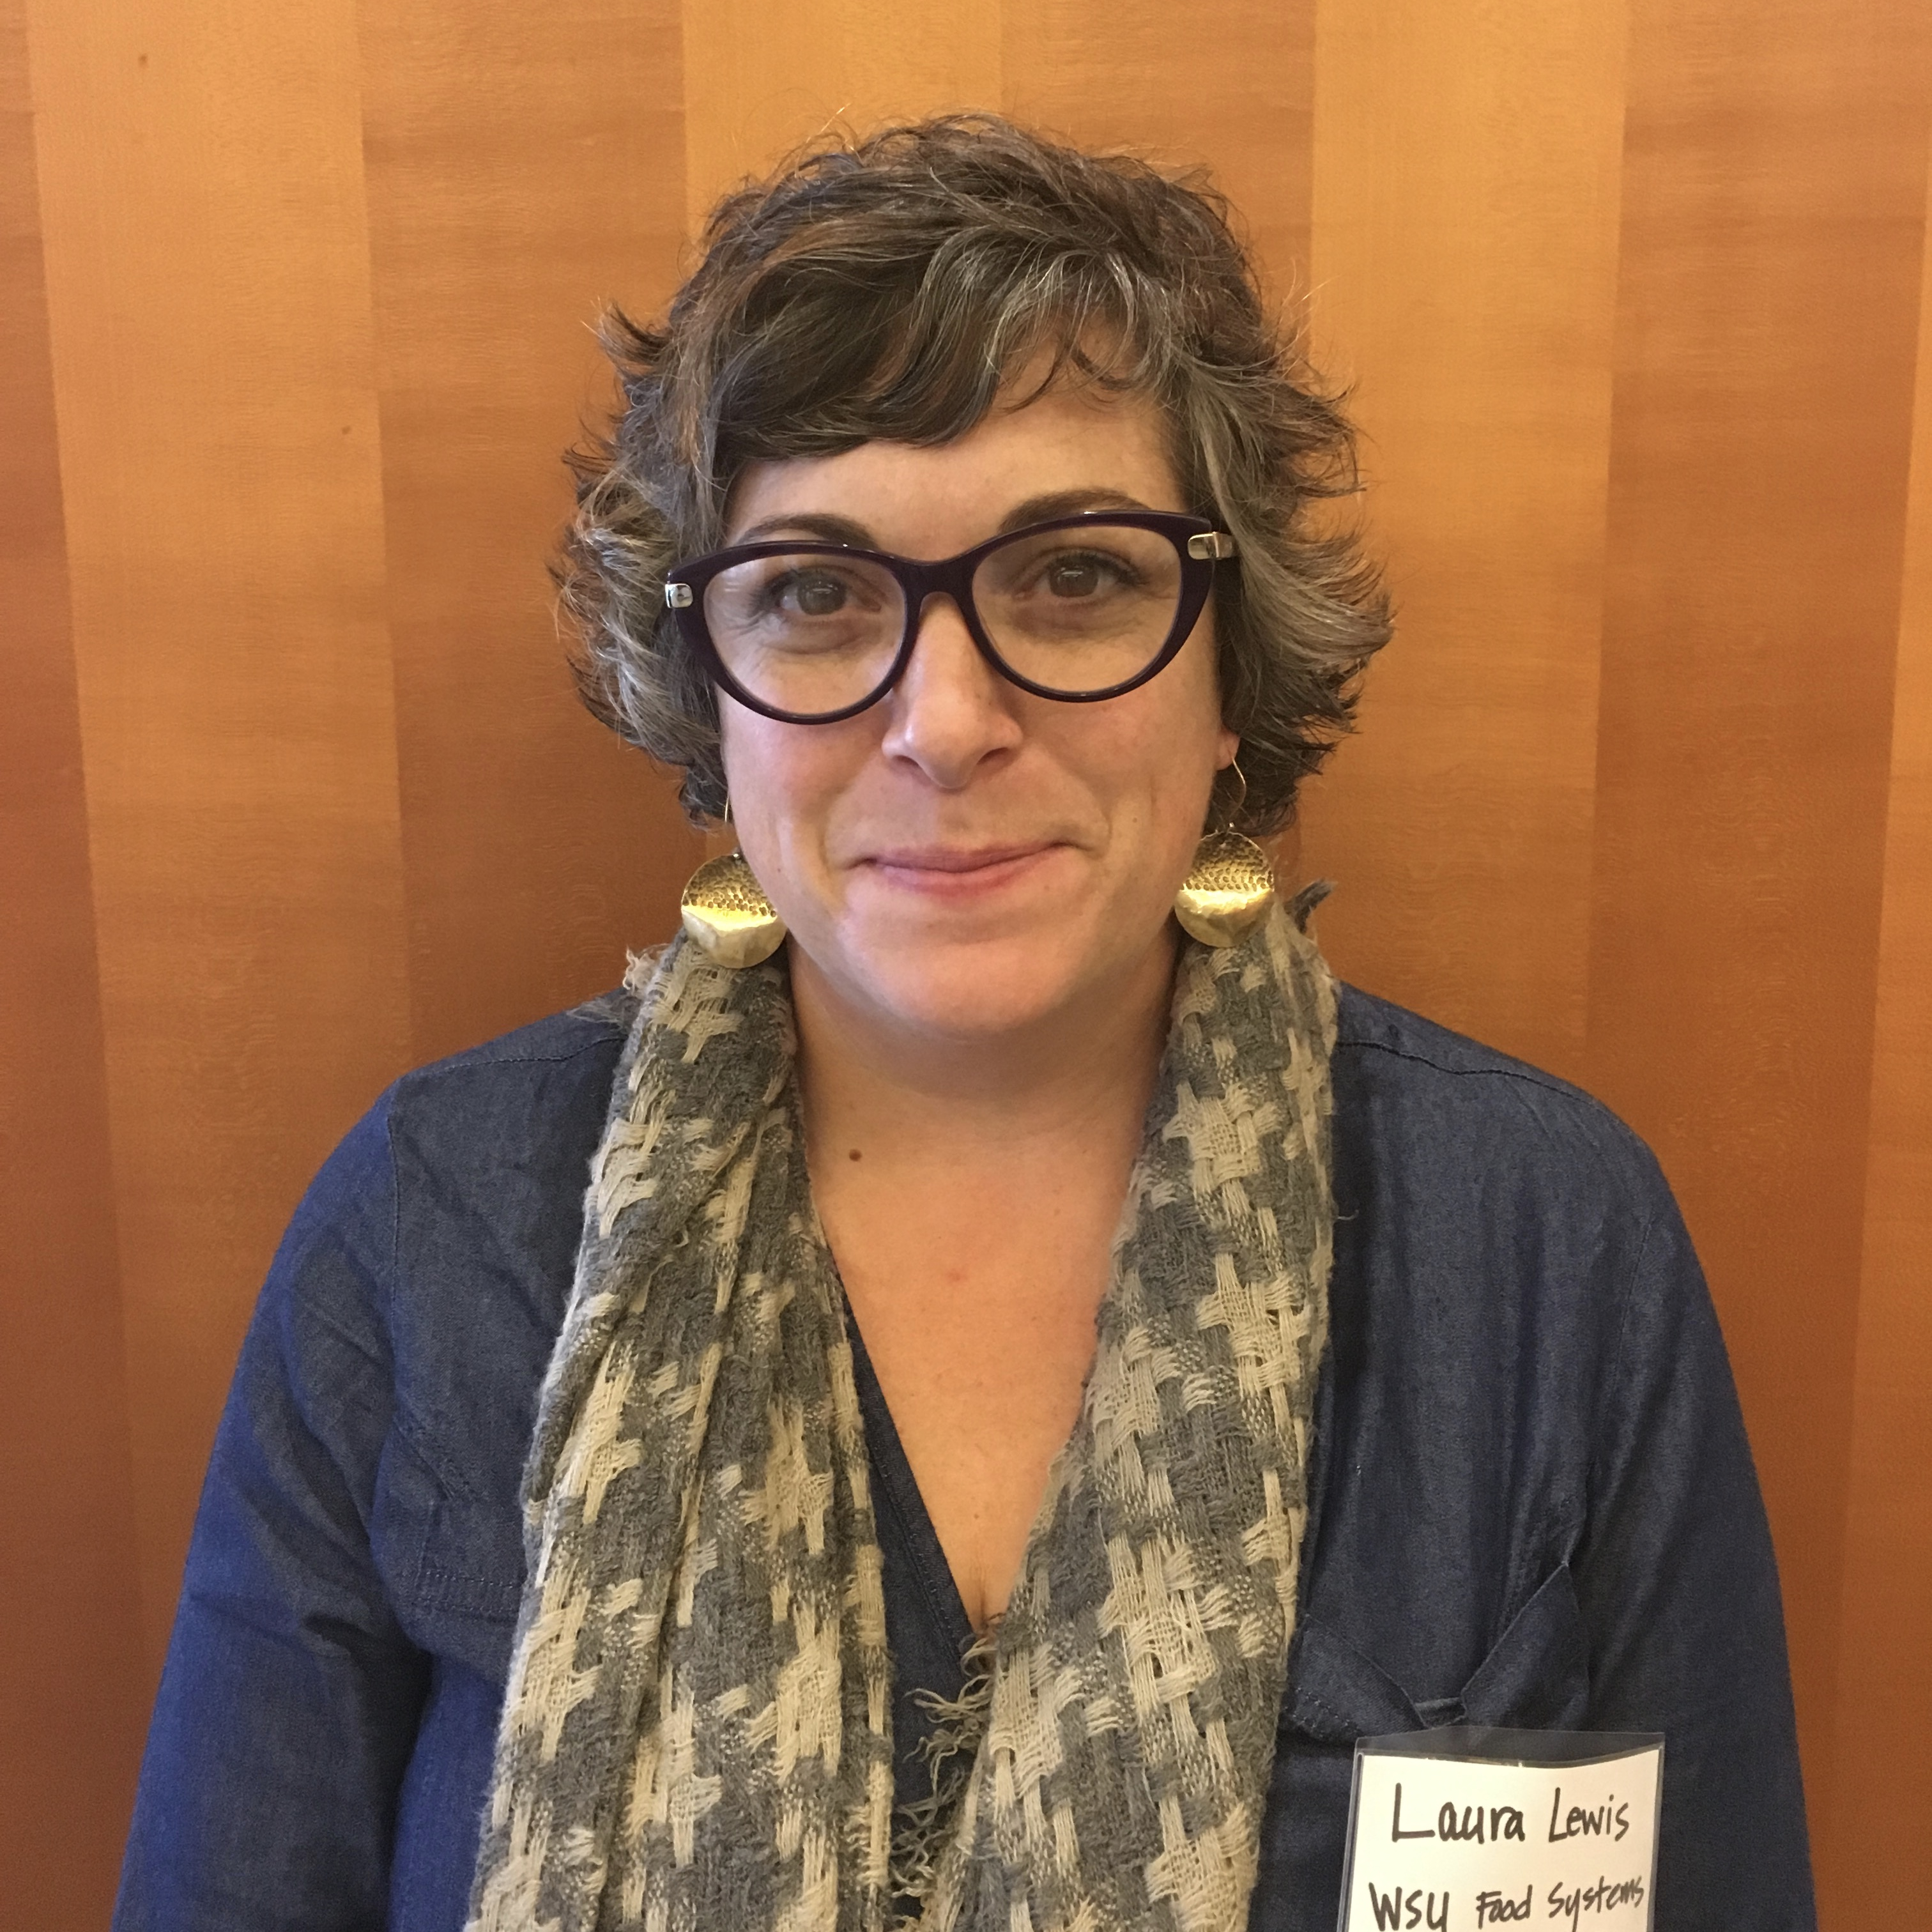 WSU Food Systems Leader - Laura Lewis